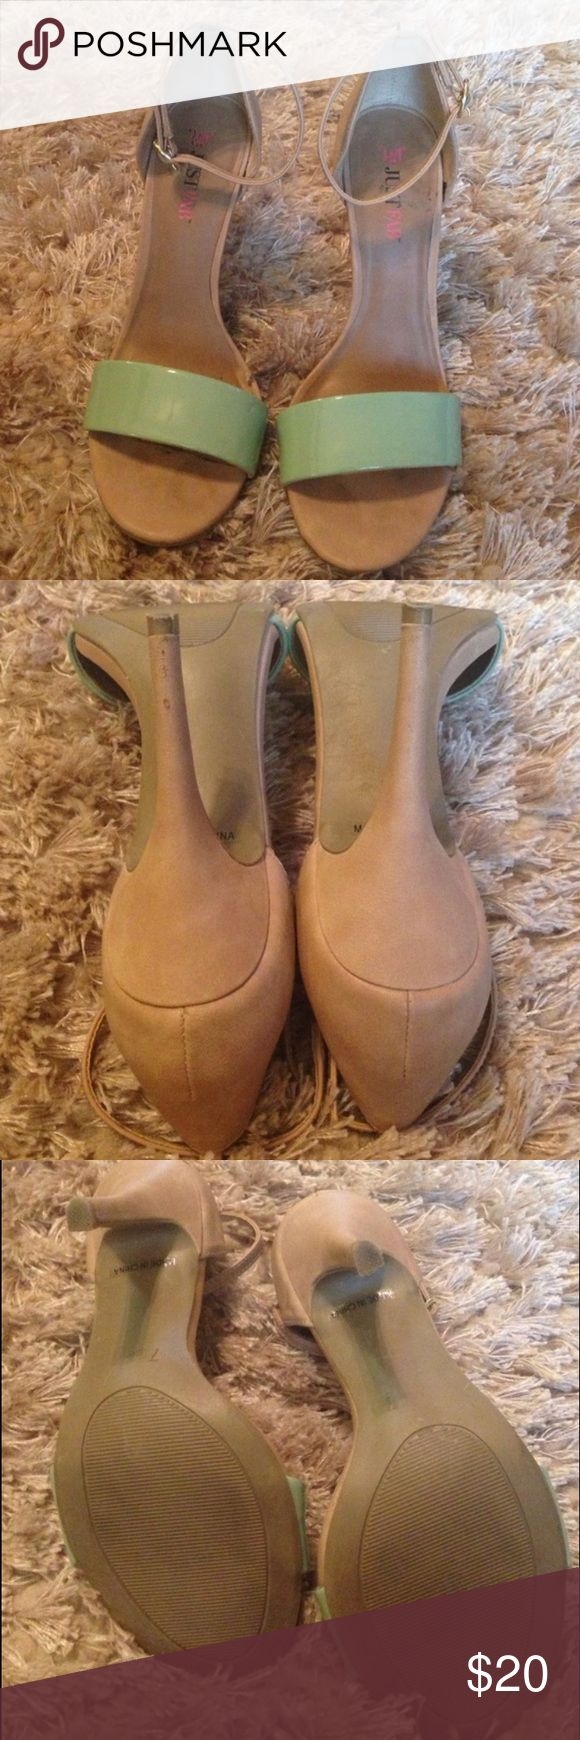 "Nude/tan/beige  4"" heels with mint toe strap Worn about 4 times from JustFab fits sizes 7-71/2 JustFab Shoes Heels"